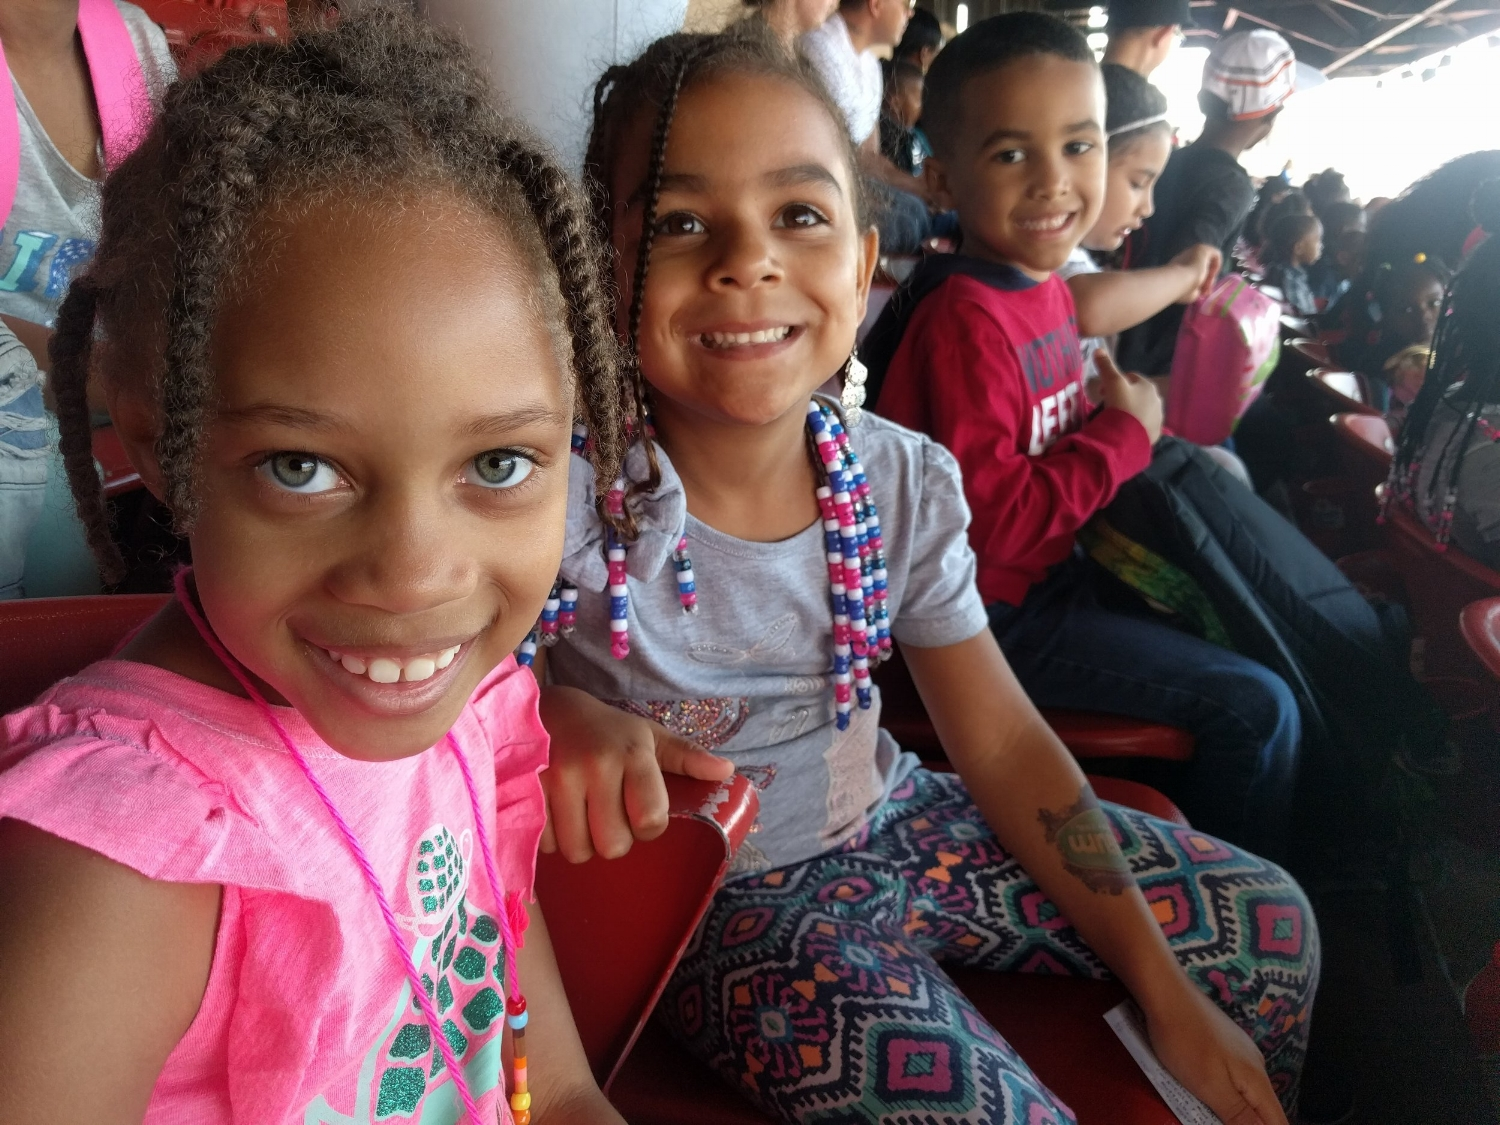 Students at the Bisons Game